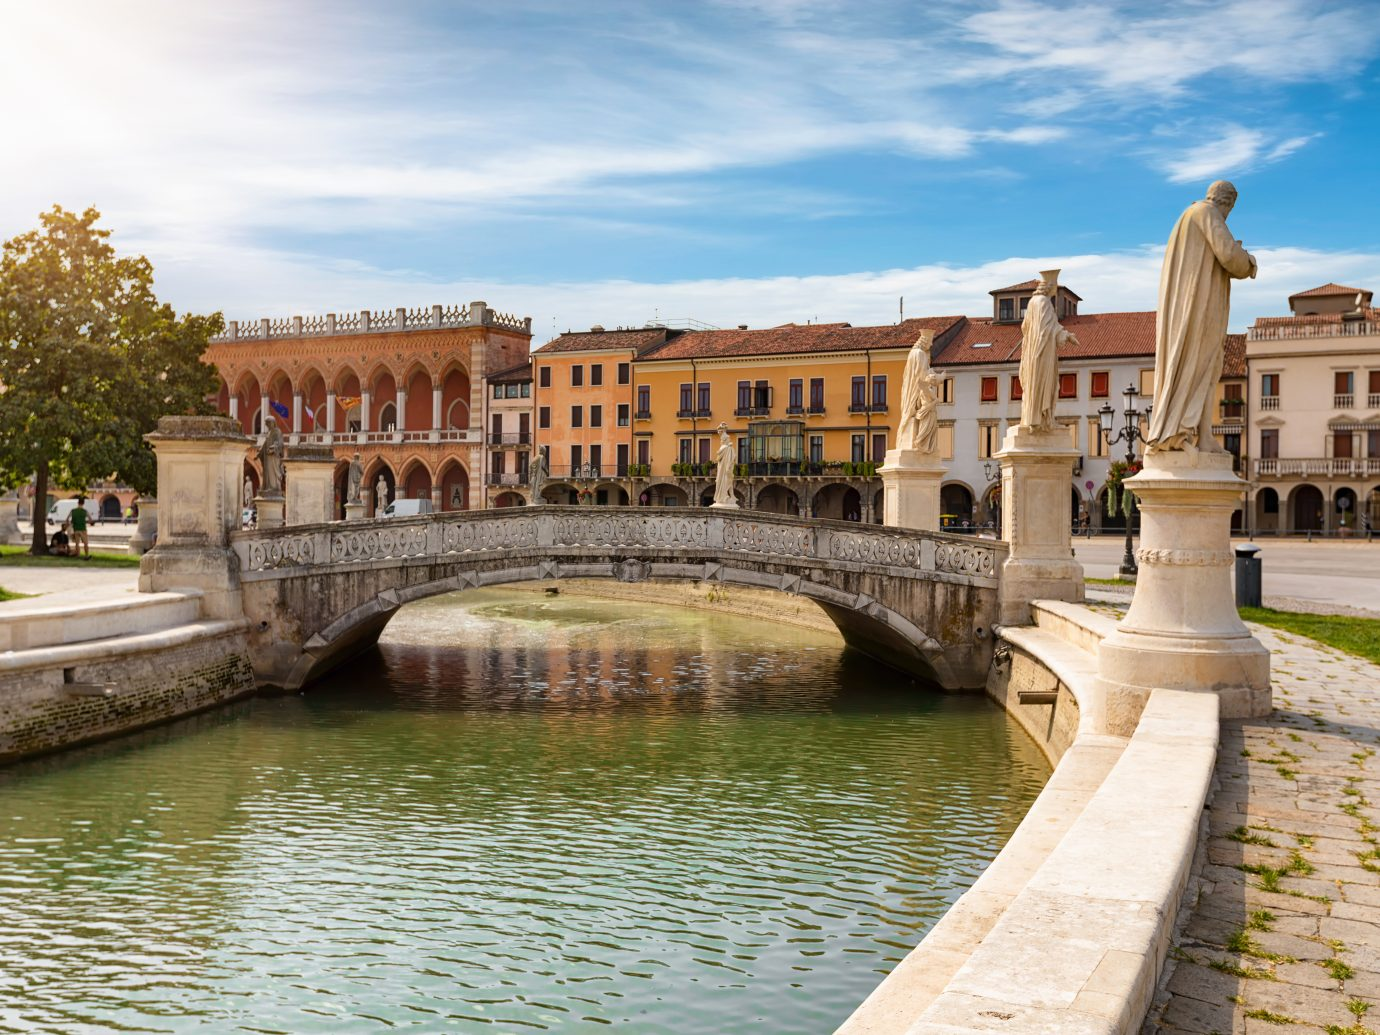 The Prato della Valle Square in Padova, Italy, with it`s canals and bridges